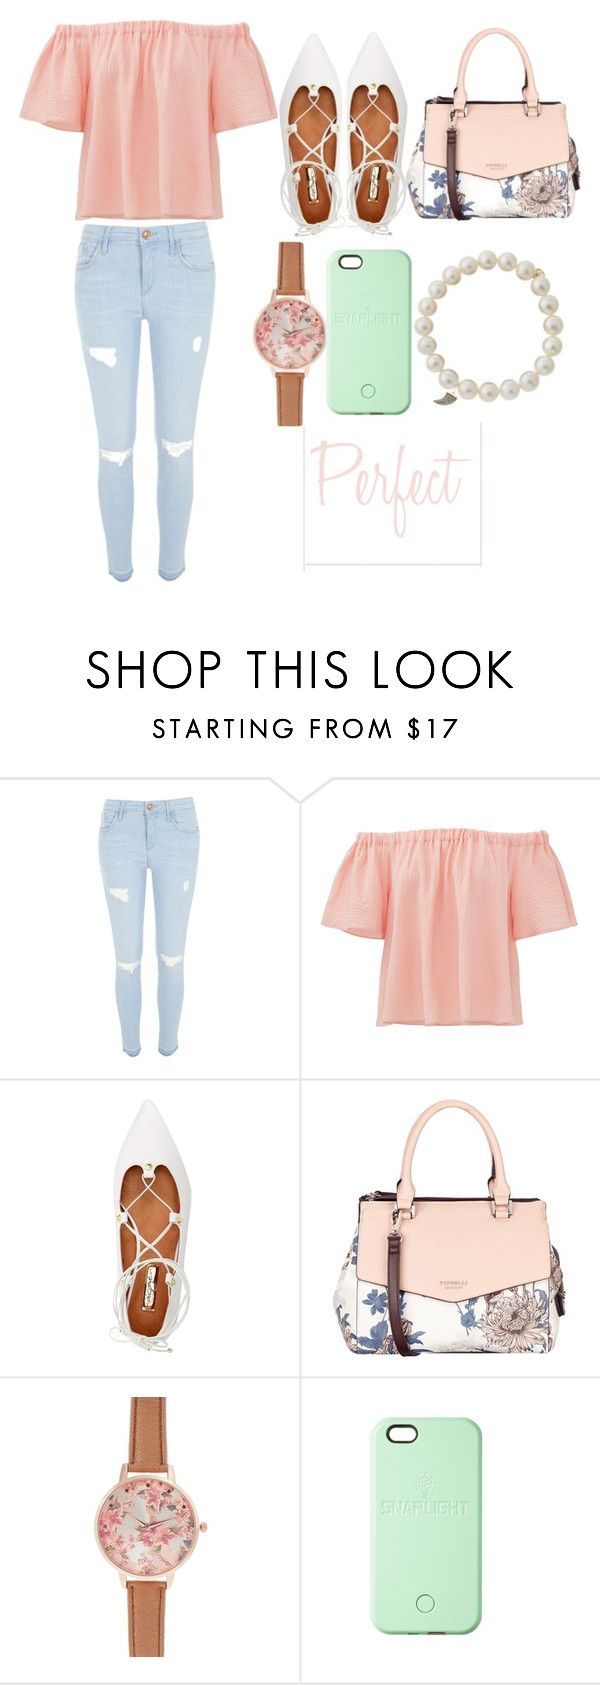 """Pastel"" by fashuneestuh ❤ liked on Polyvore featuring River Island, Rebecca Taylor, Halogen, Fiorelli, New Look, SnapLight and Sydney Evan"